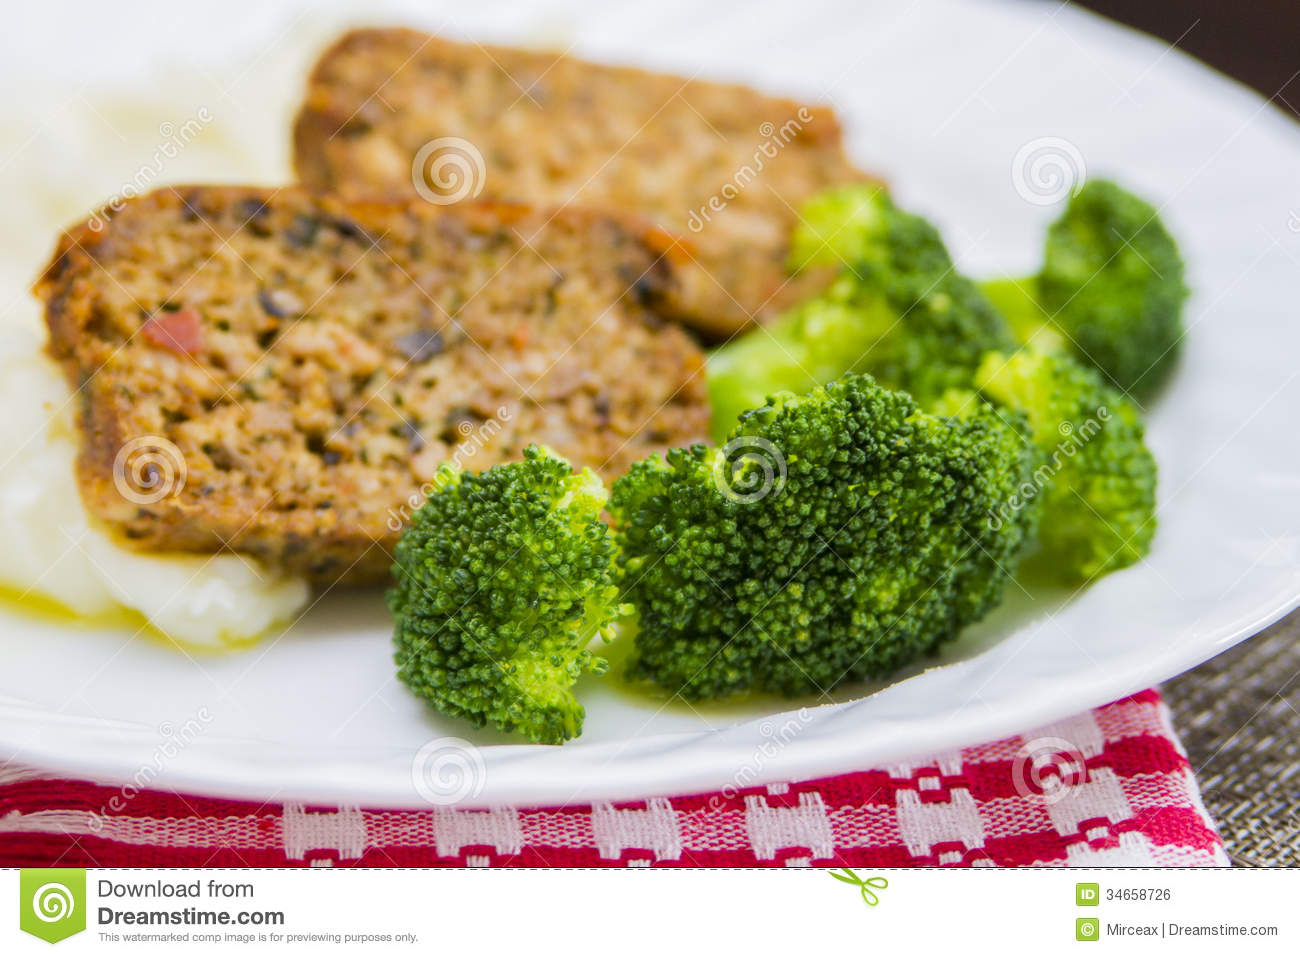 ... baked homestyle pork meatloaf with mashed potatoes and broccoli